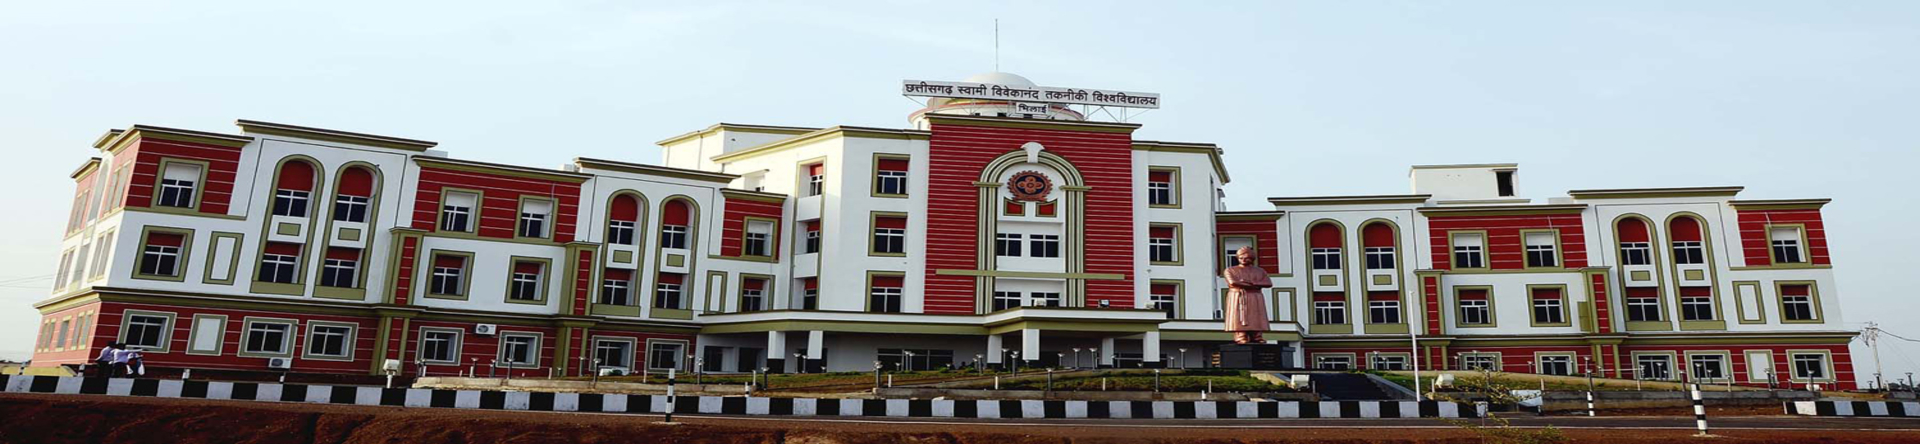 Chhattisgarh Swami Vivekanand Technical University Bhilai